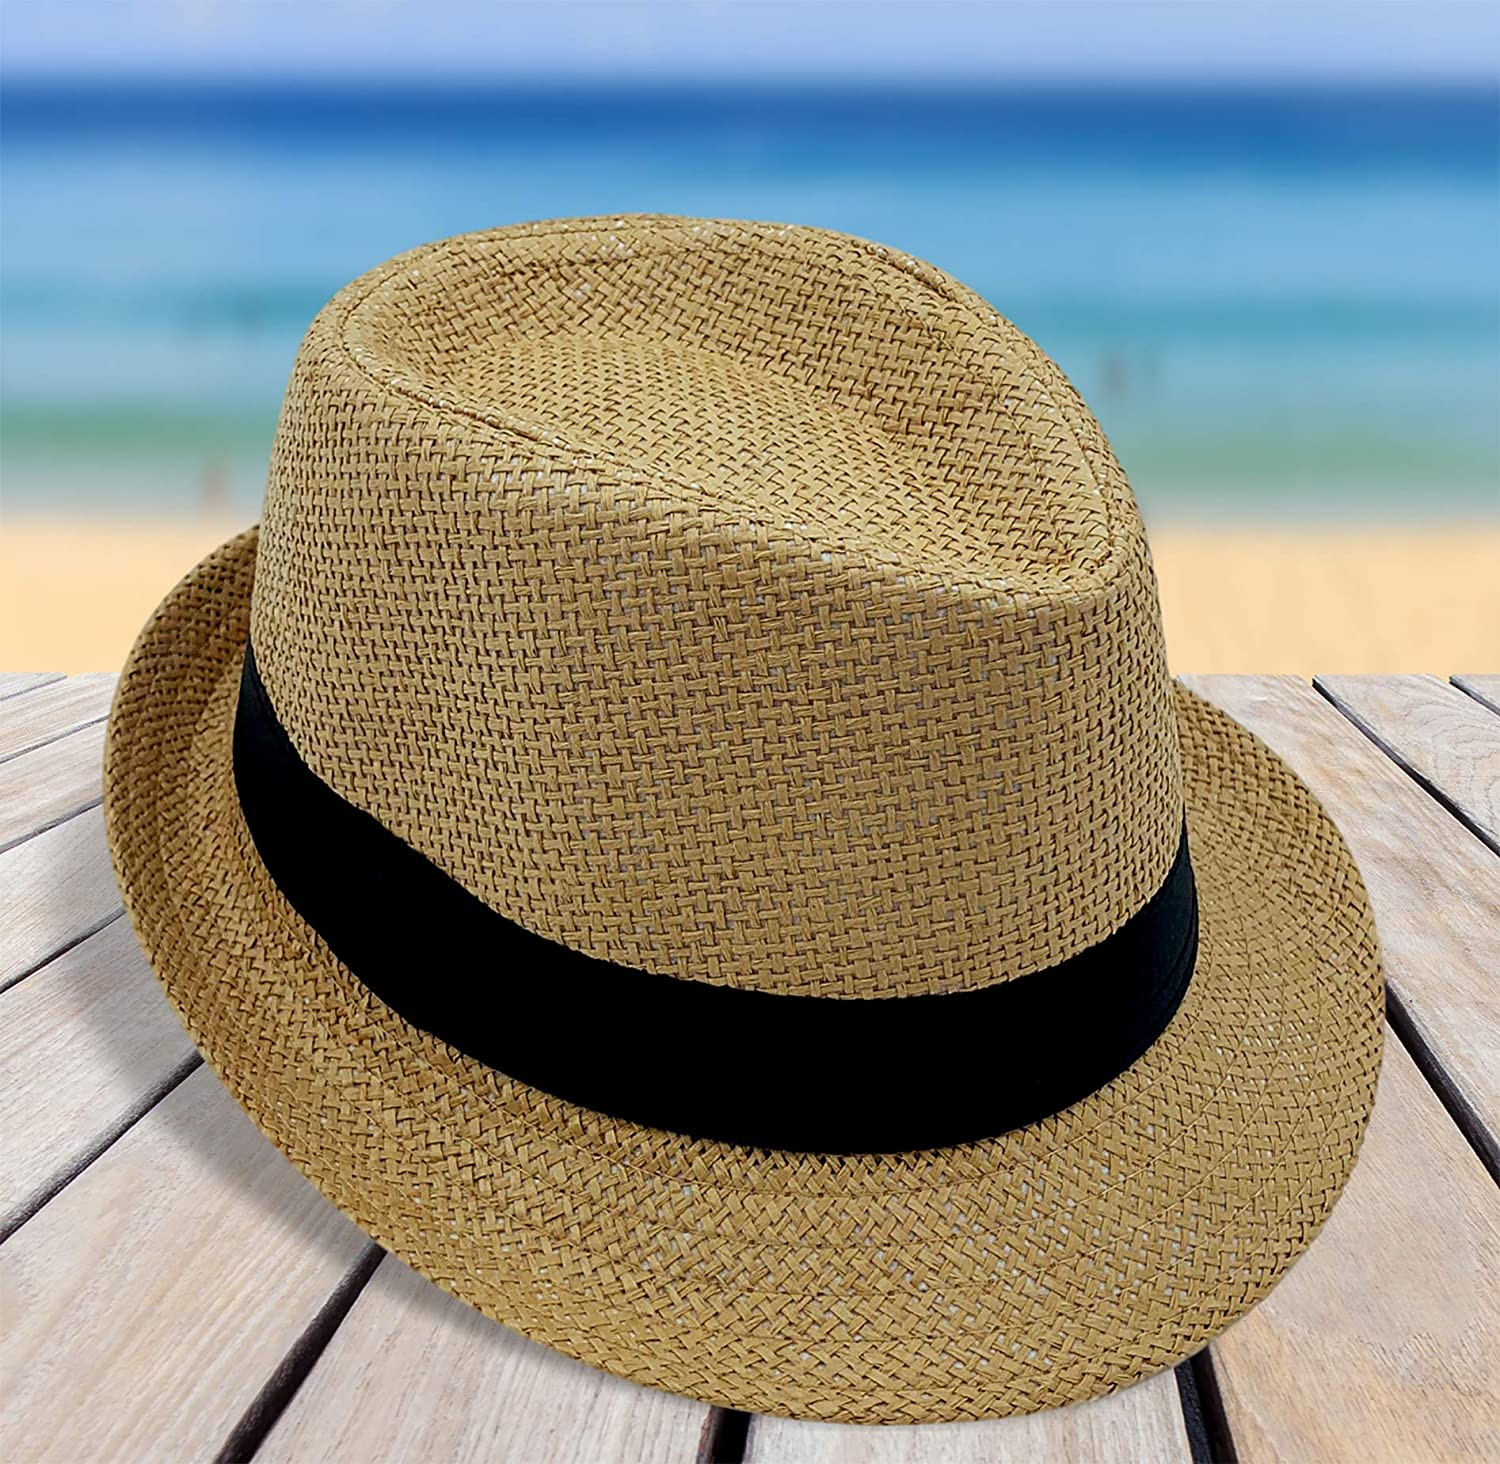 Straw Summer Hats for Boys and Girls CD Fedora Hats for Kids Youth Vintage Banded Style Trilby Gangster Hat